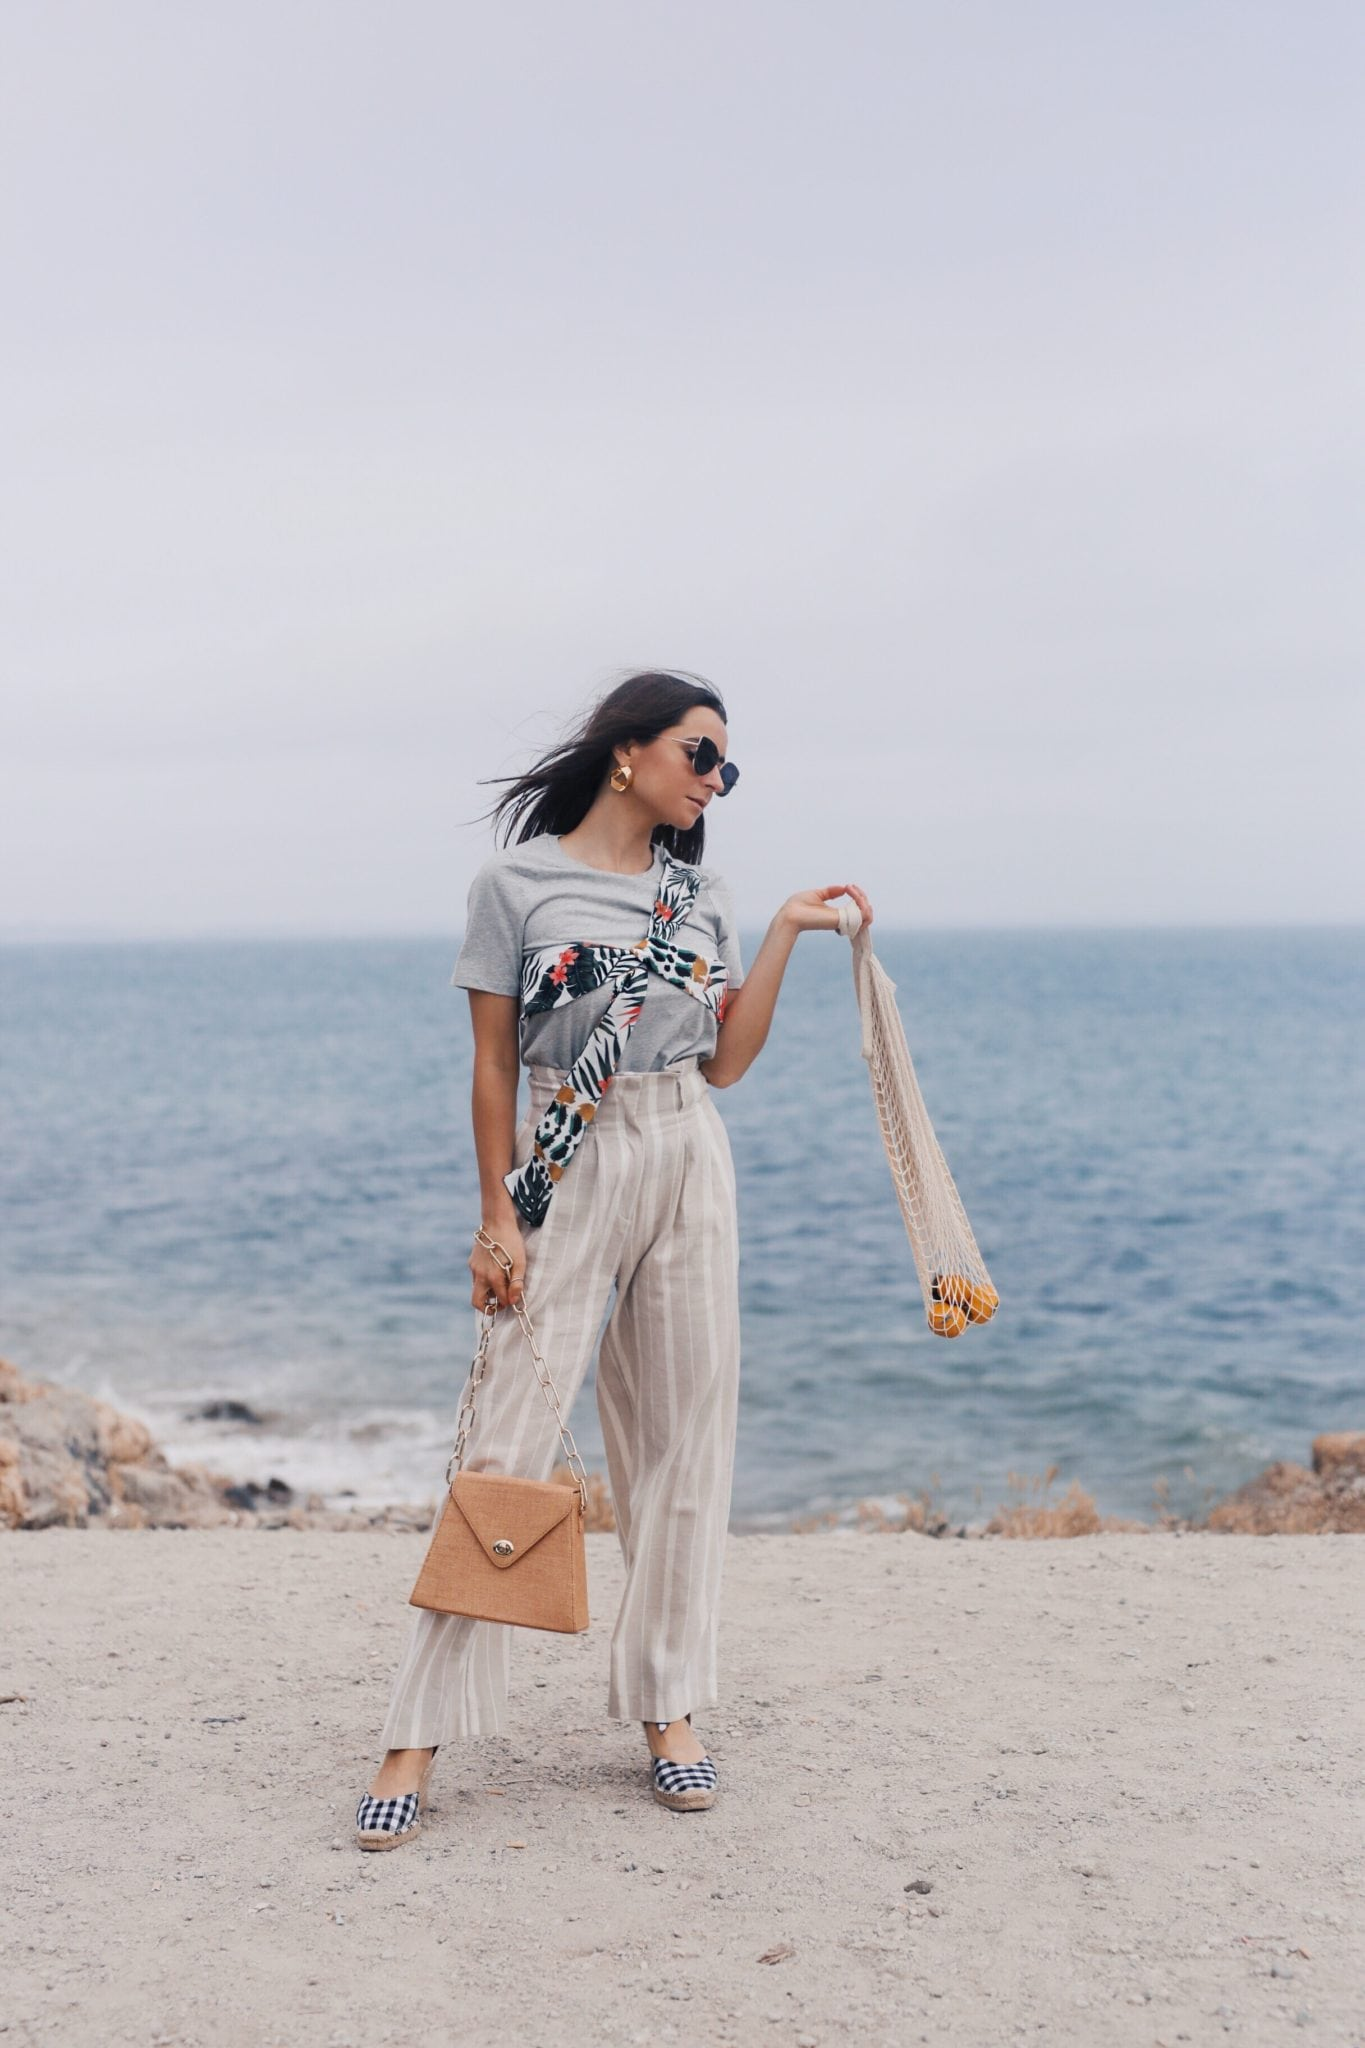 How to style linen - The linen pants for work and the bardot dress. Summer style - Read this post for summer outfit ideas using linen fabric. More on modersvp.com